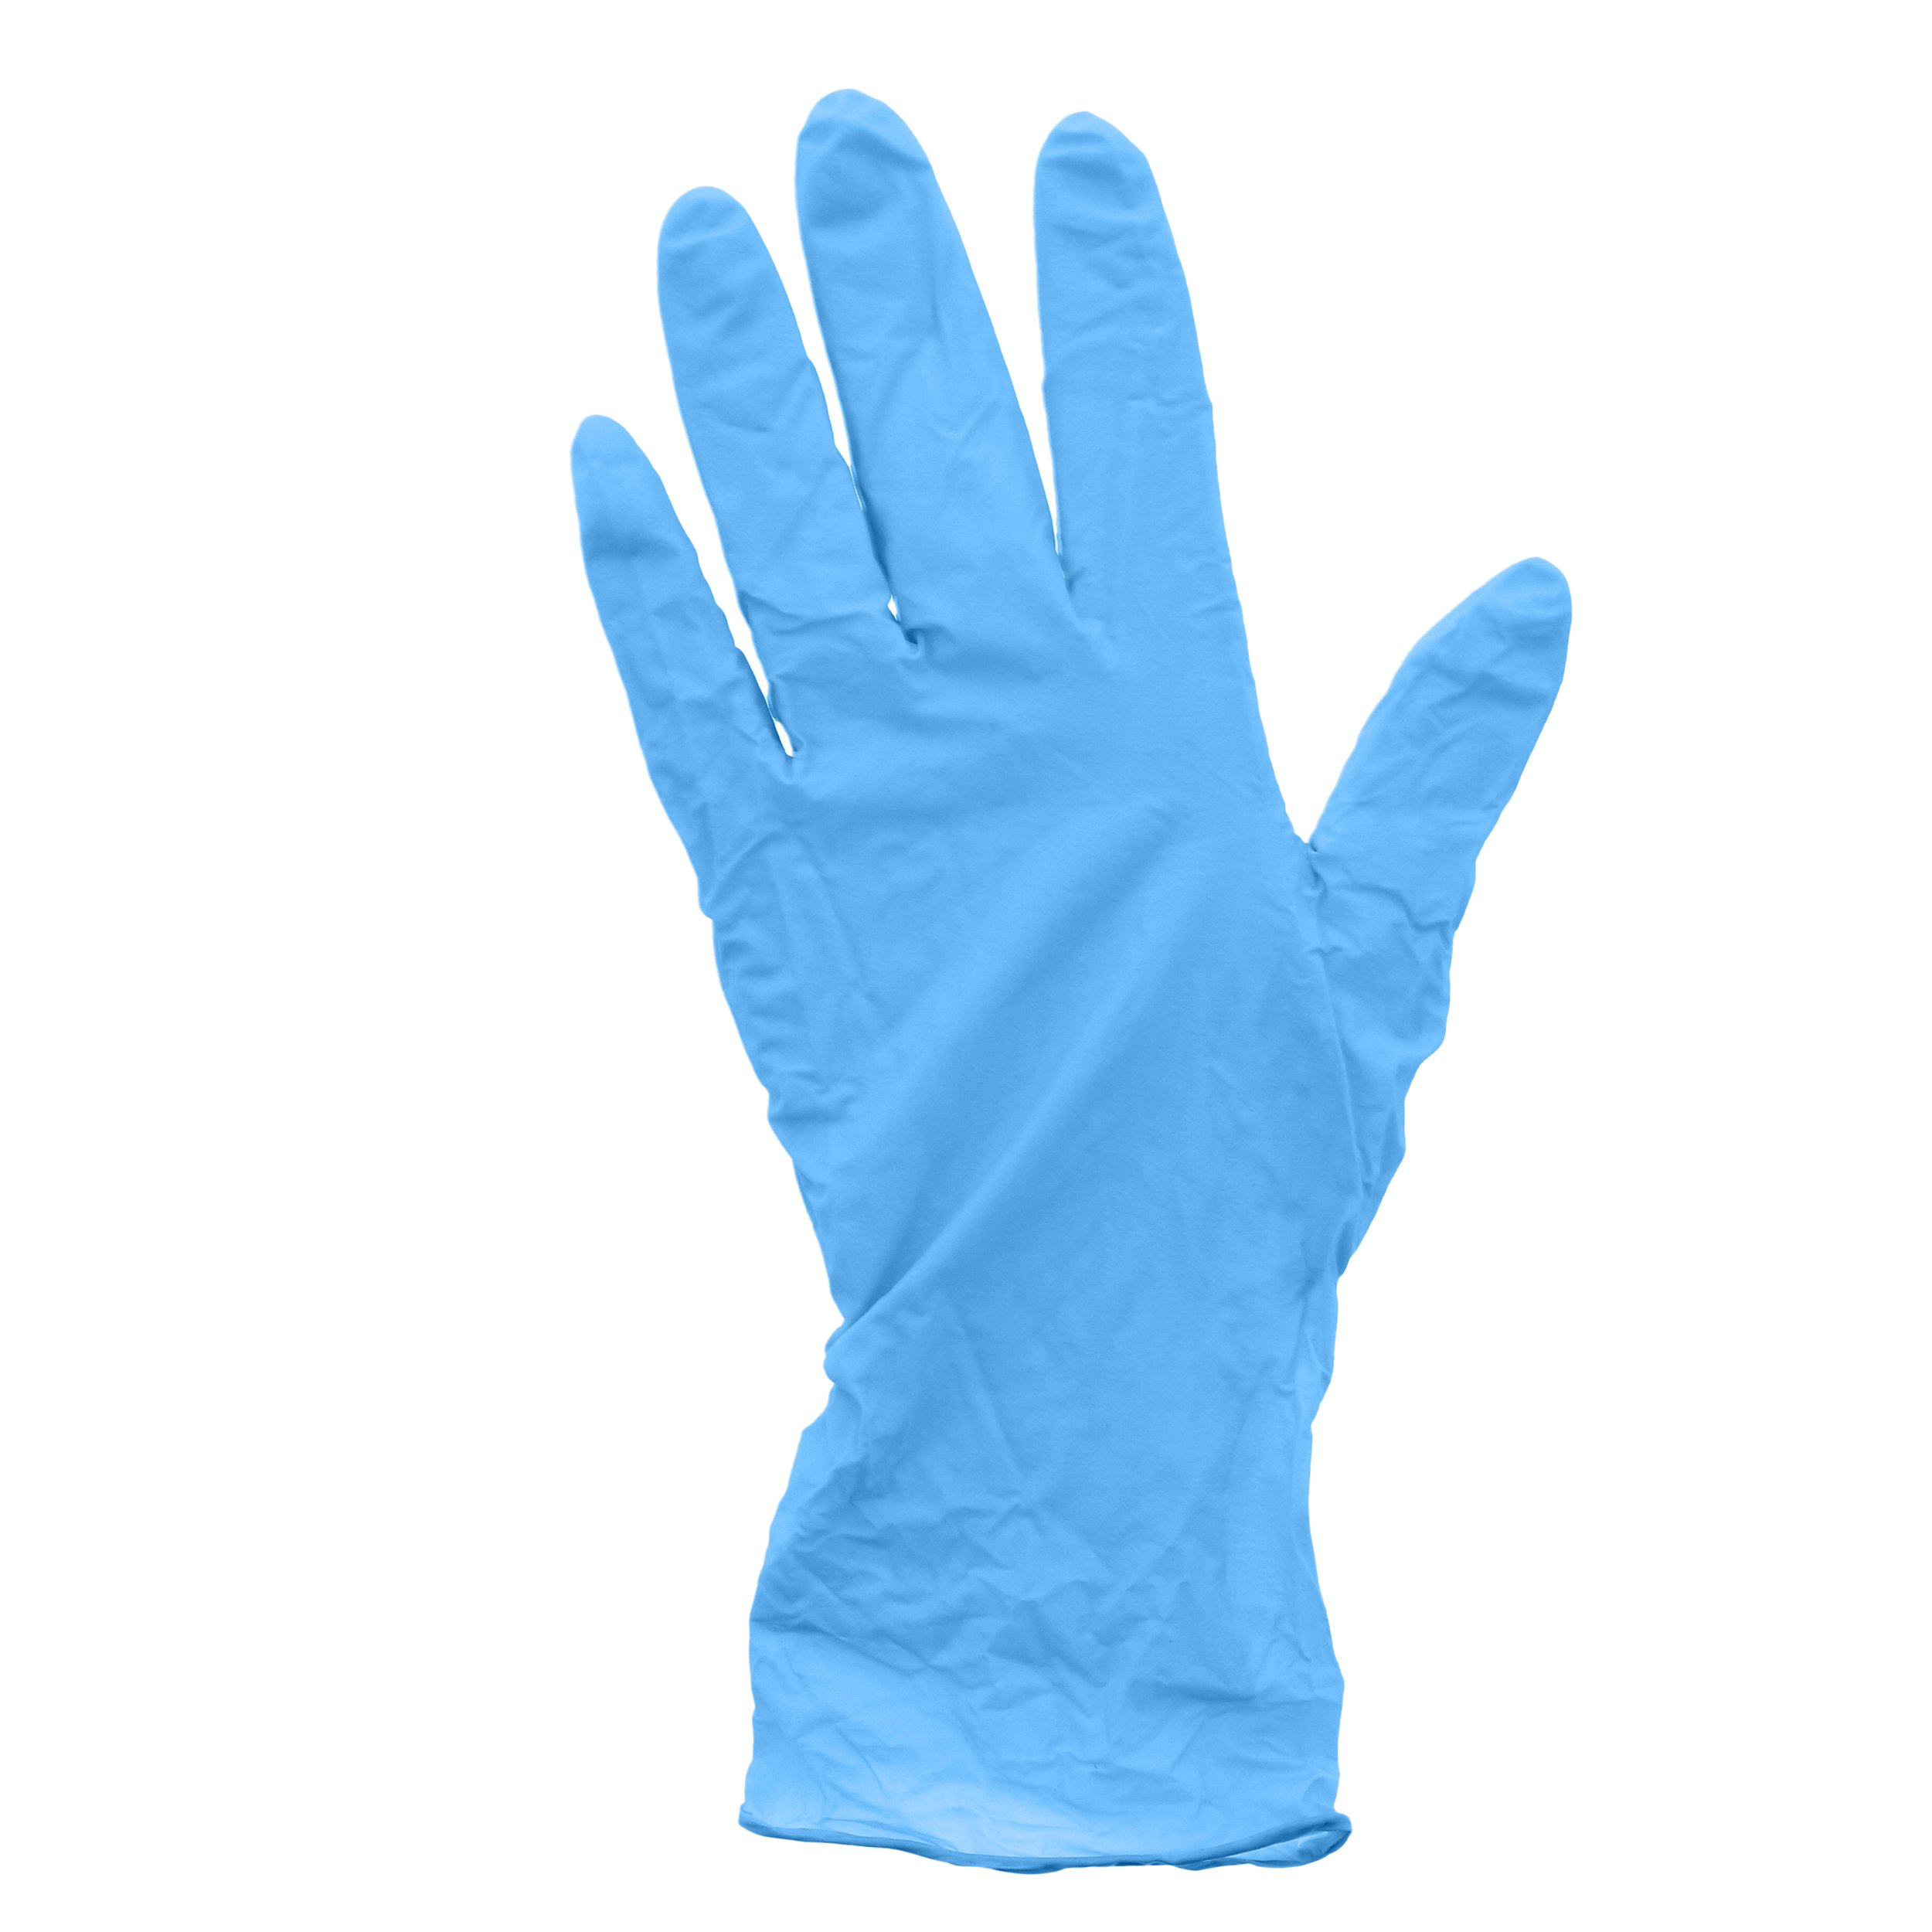 AmerCare 20992-C Pacific Blue Nitrile Gloves, Powder Free, Medium (Pack of 1000)